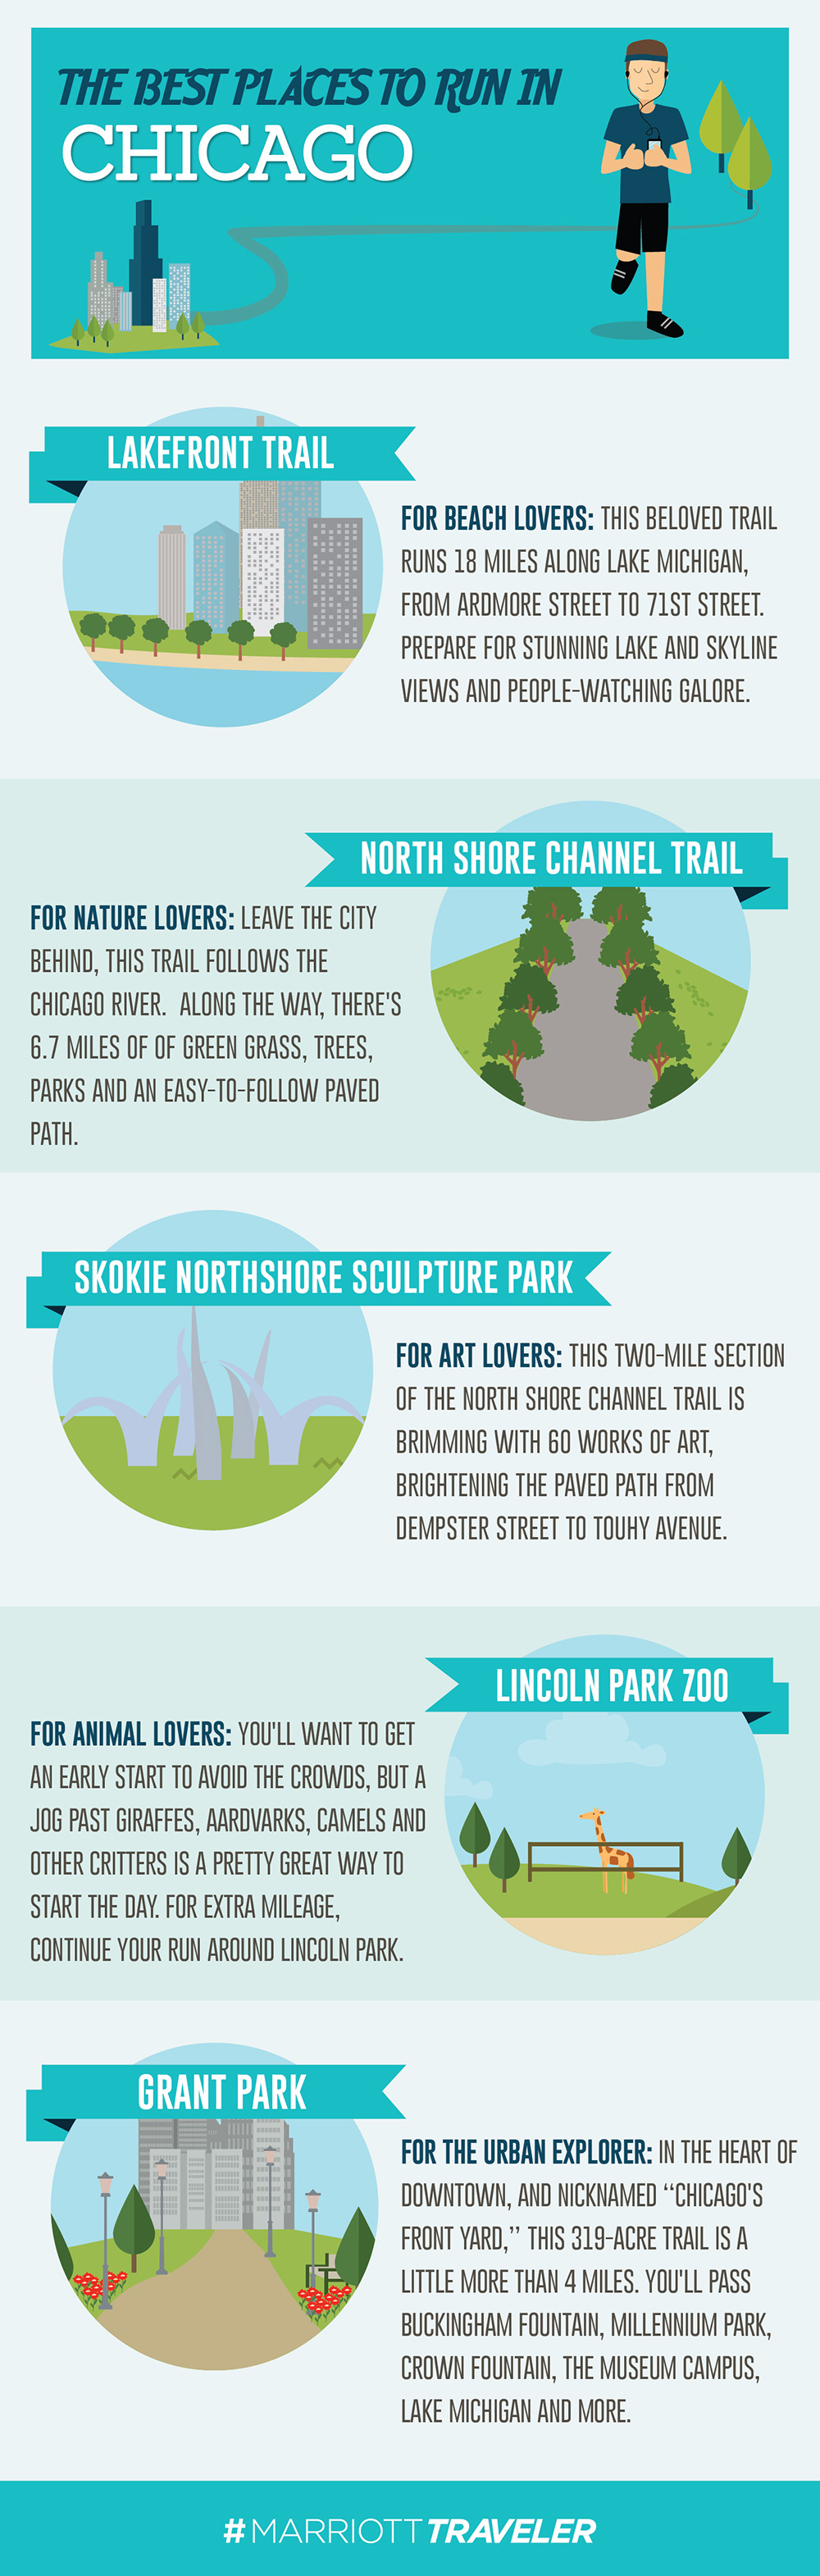 best_places_to_run_chicago_infographic-main-1.jpg